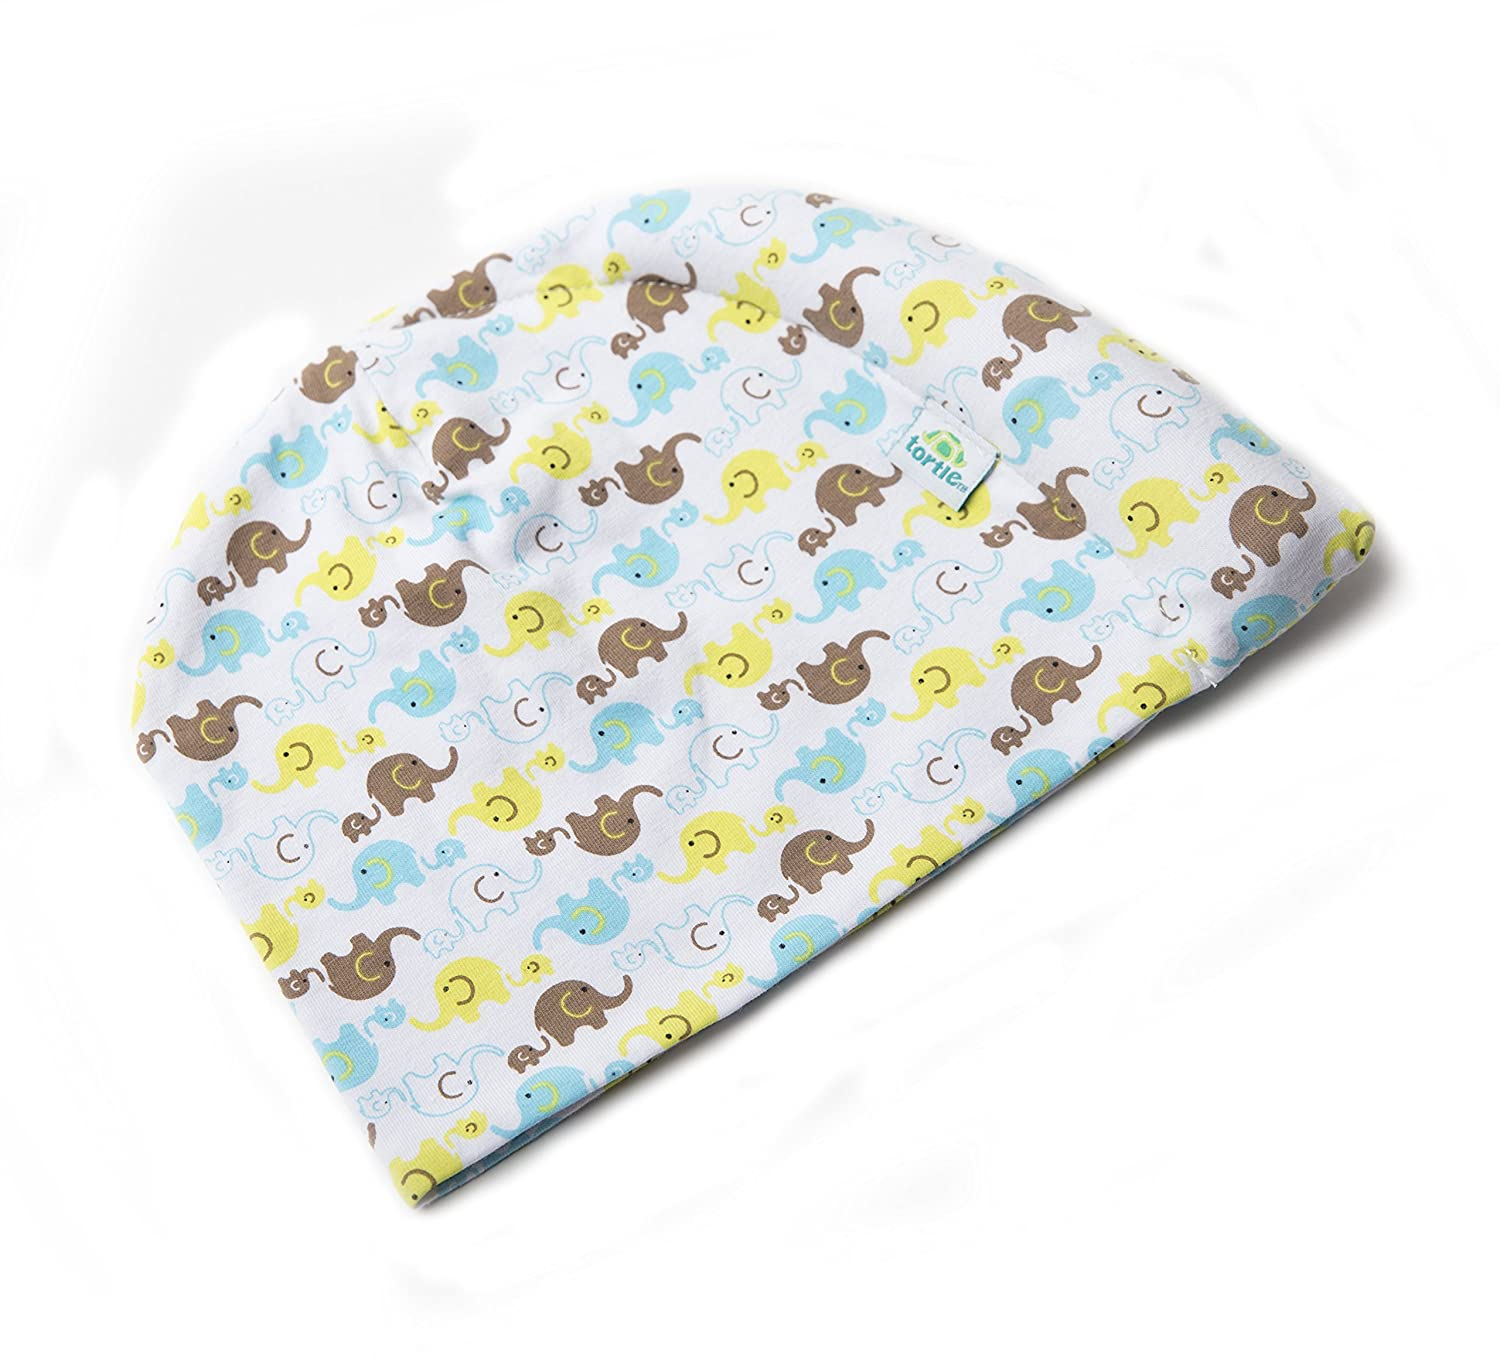 Medium NEW Prevents Flat Head Syndrome Tortle Lucky Elephant Baby Beanie